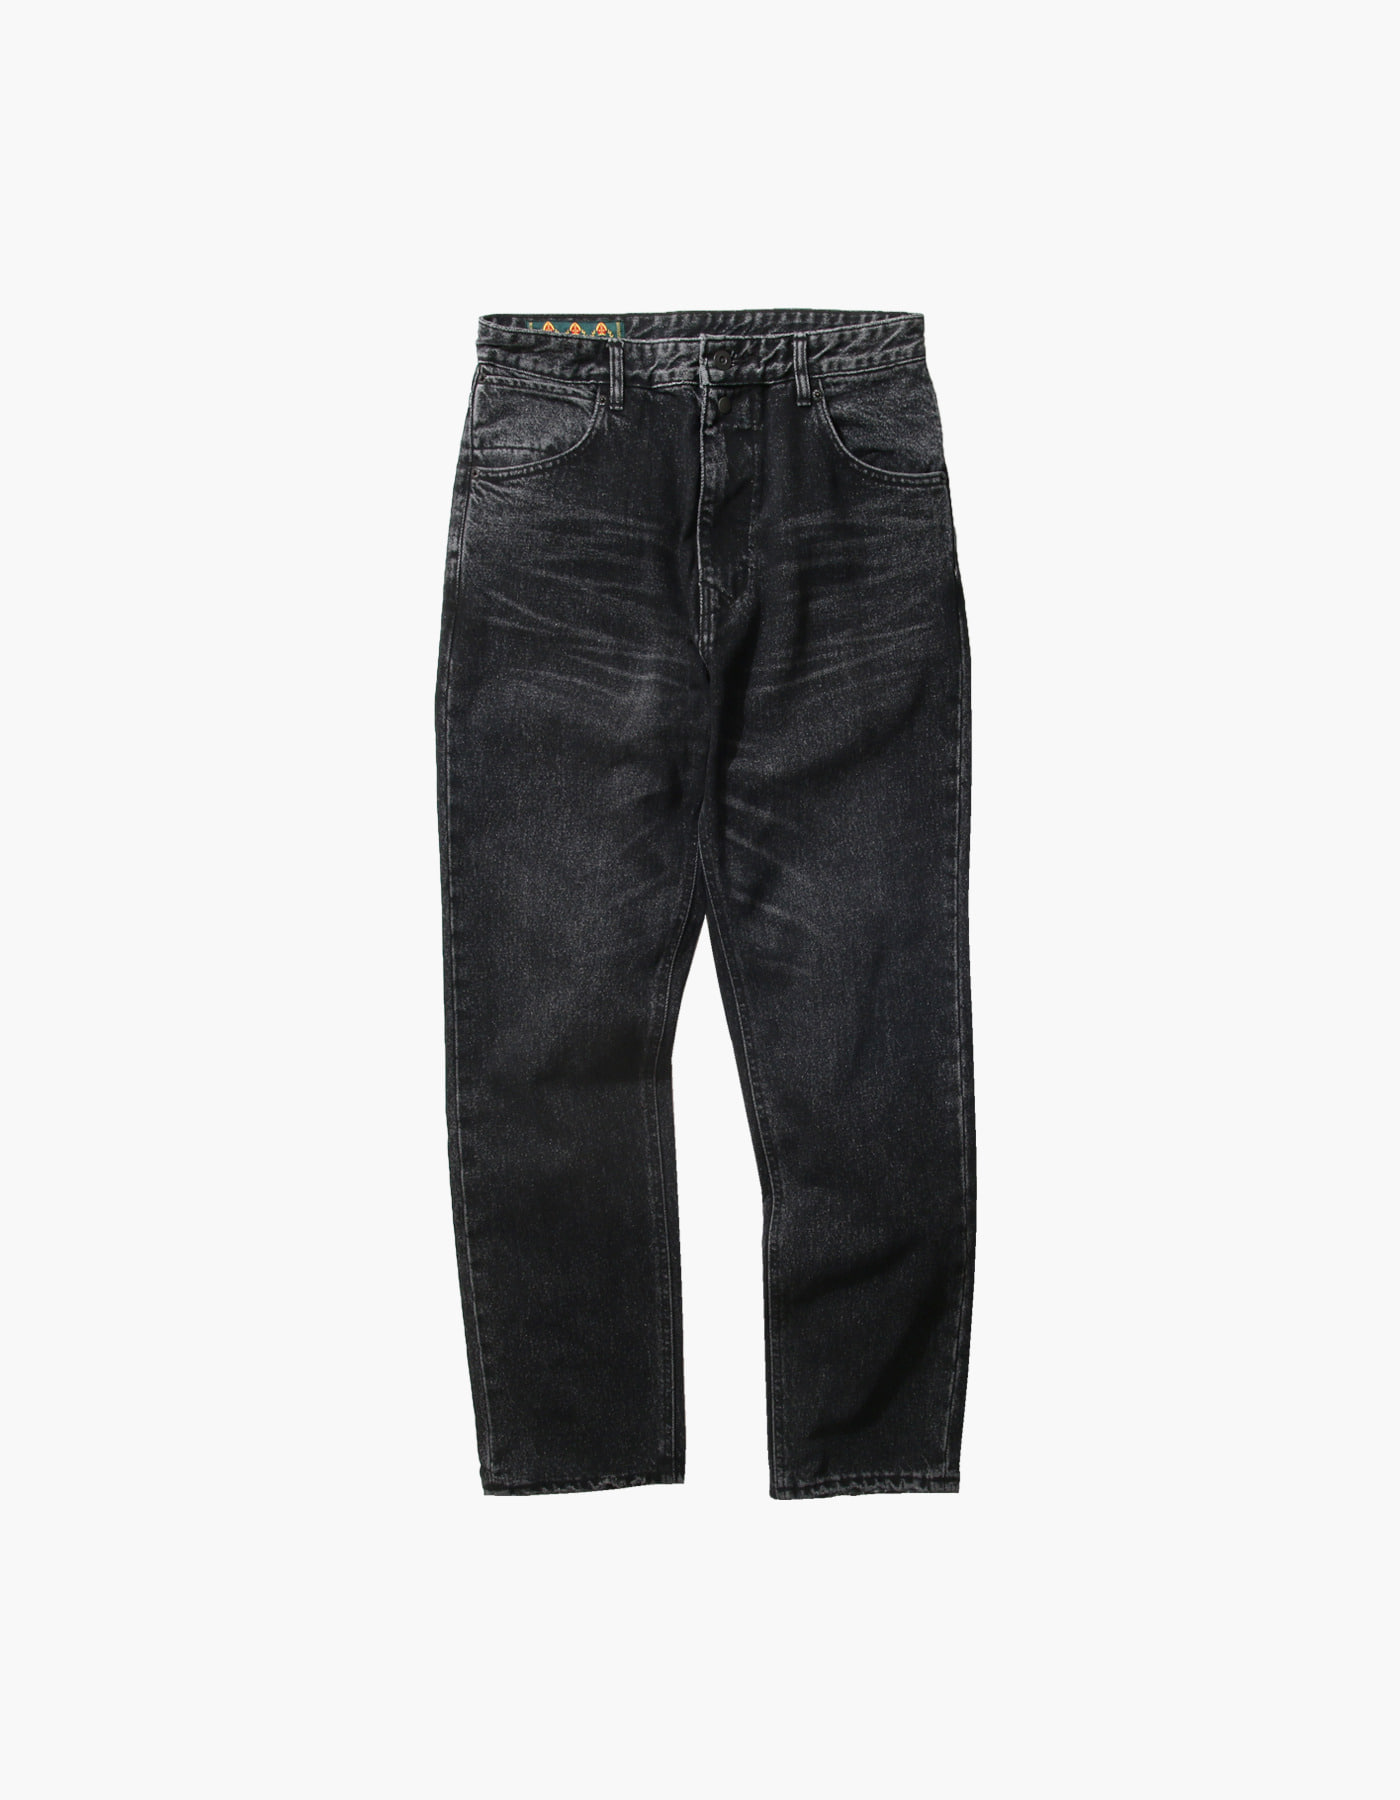 STONE WASHED BAGGY PANTS / BLACK